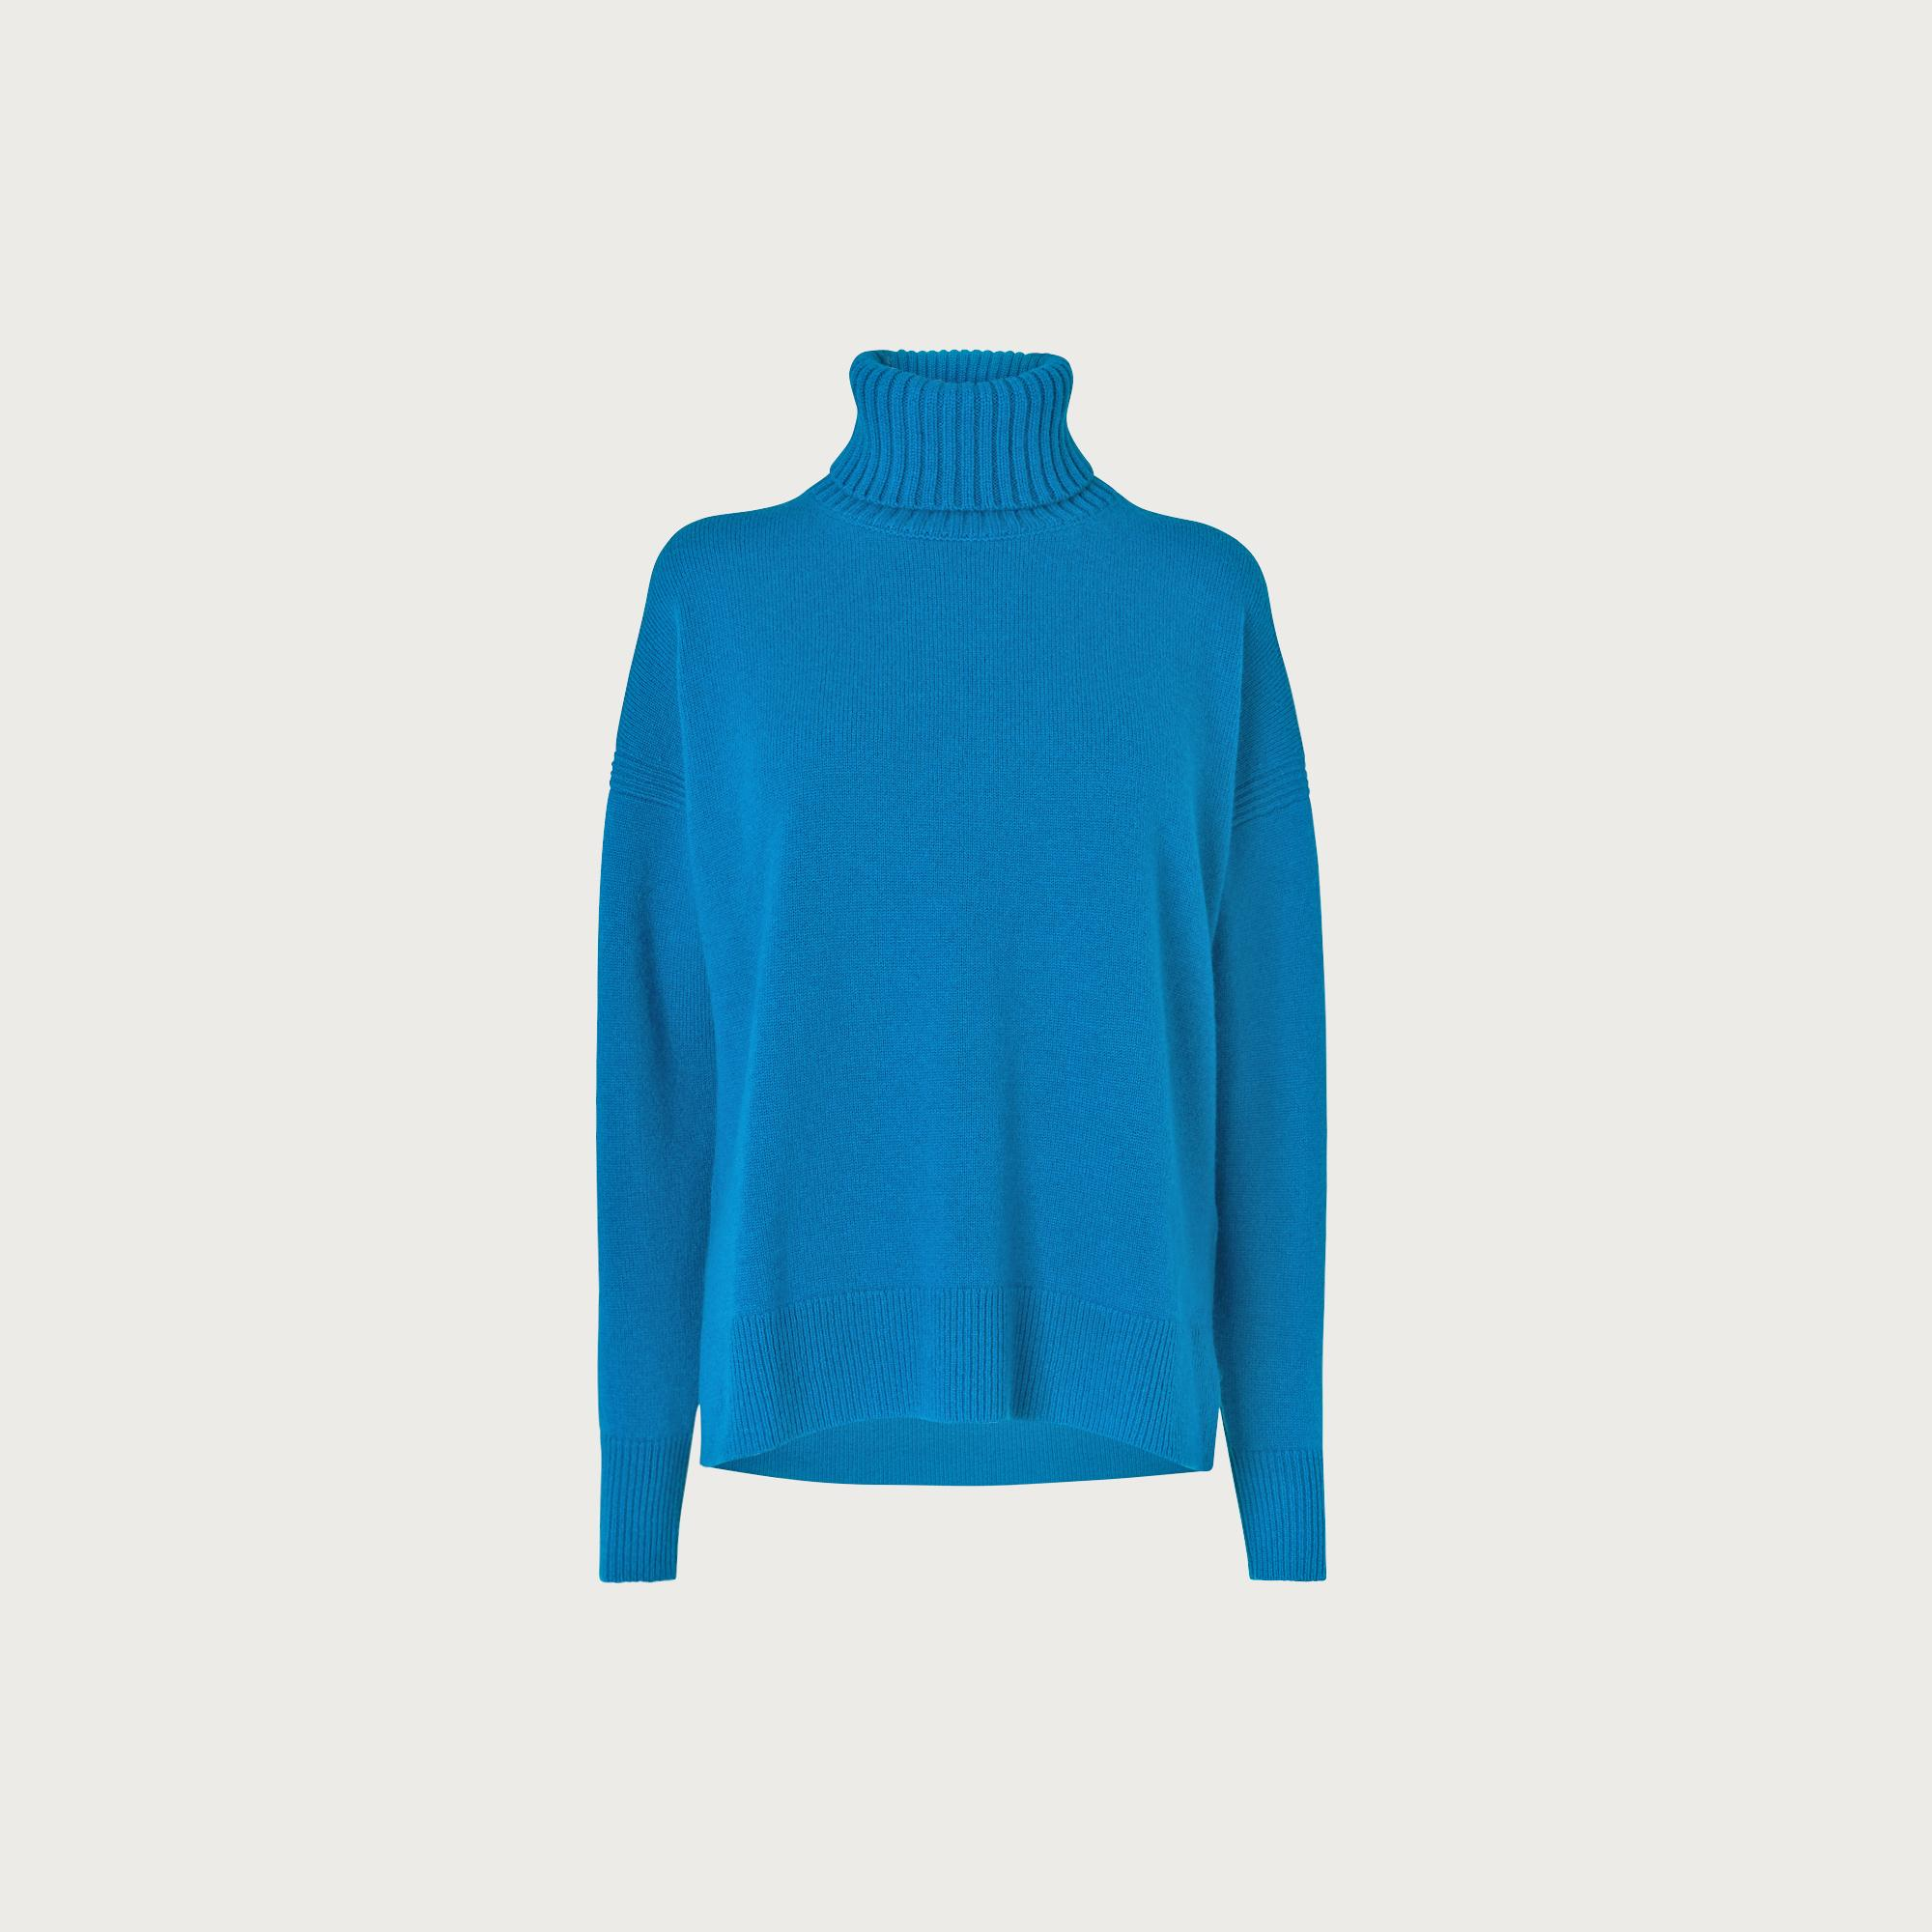 Sissi Blue Wool Cashmere Jumper by L.K.Bennett